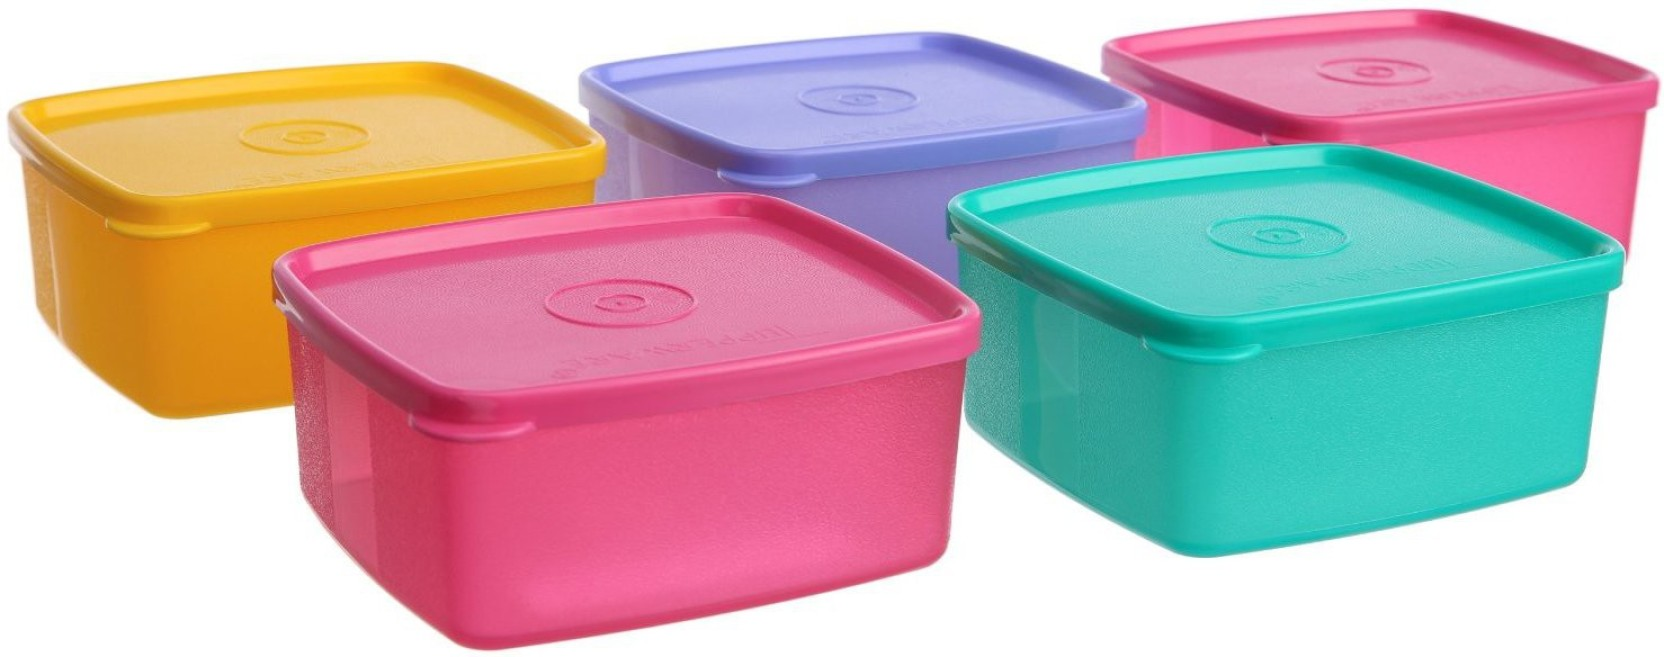 Tupperware Cool n Fresh - 500 ml Plastic Grocery Container Price in ...